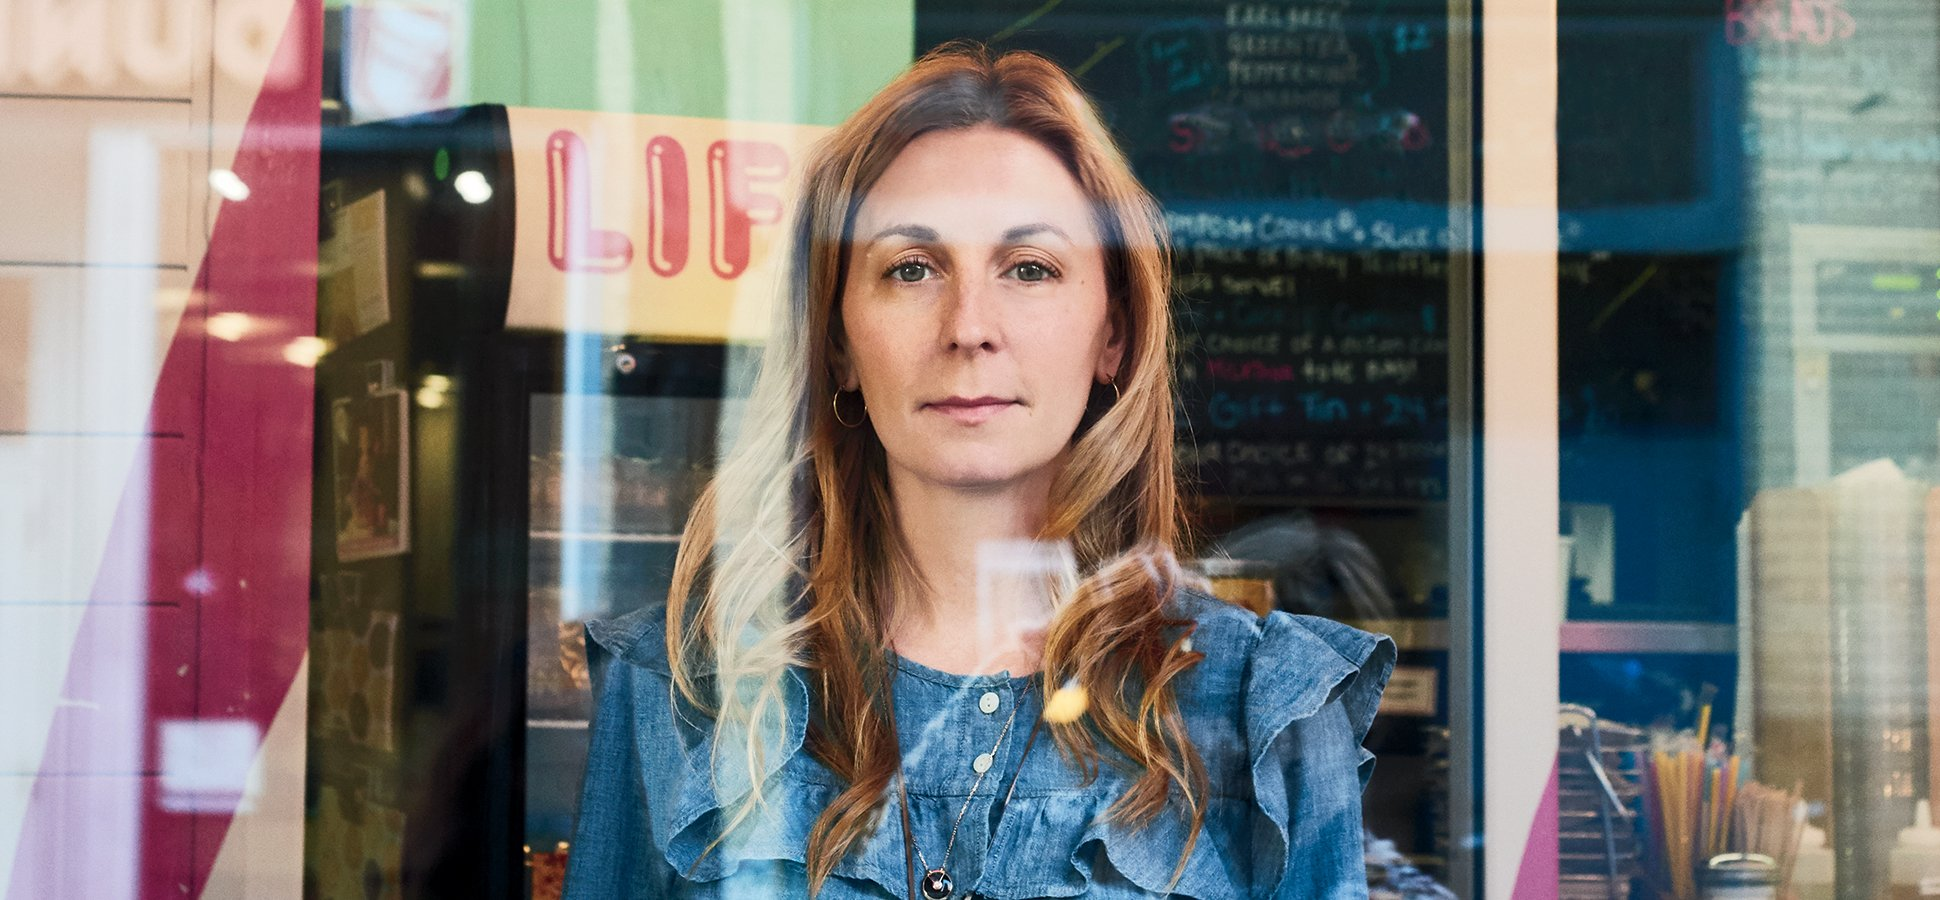 How Milk Bars Christina Tosi Went From Momofuku Employee To Bakery Chain CEO